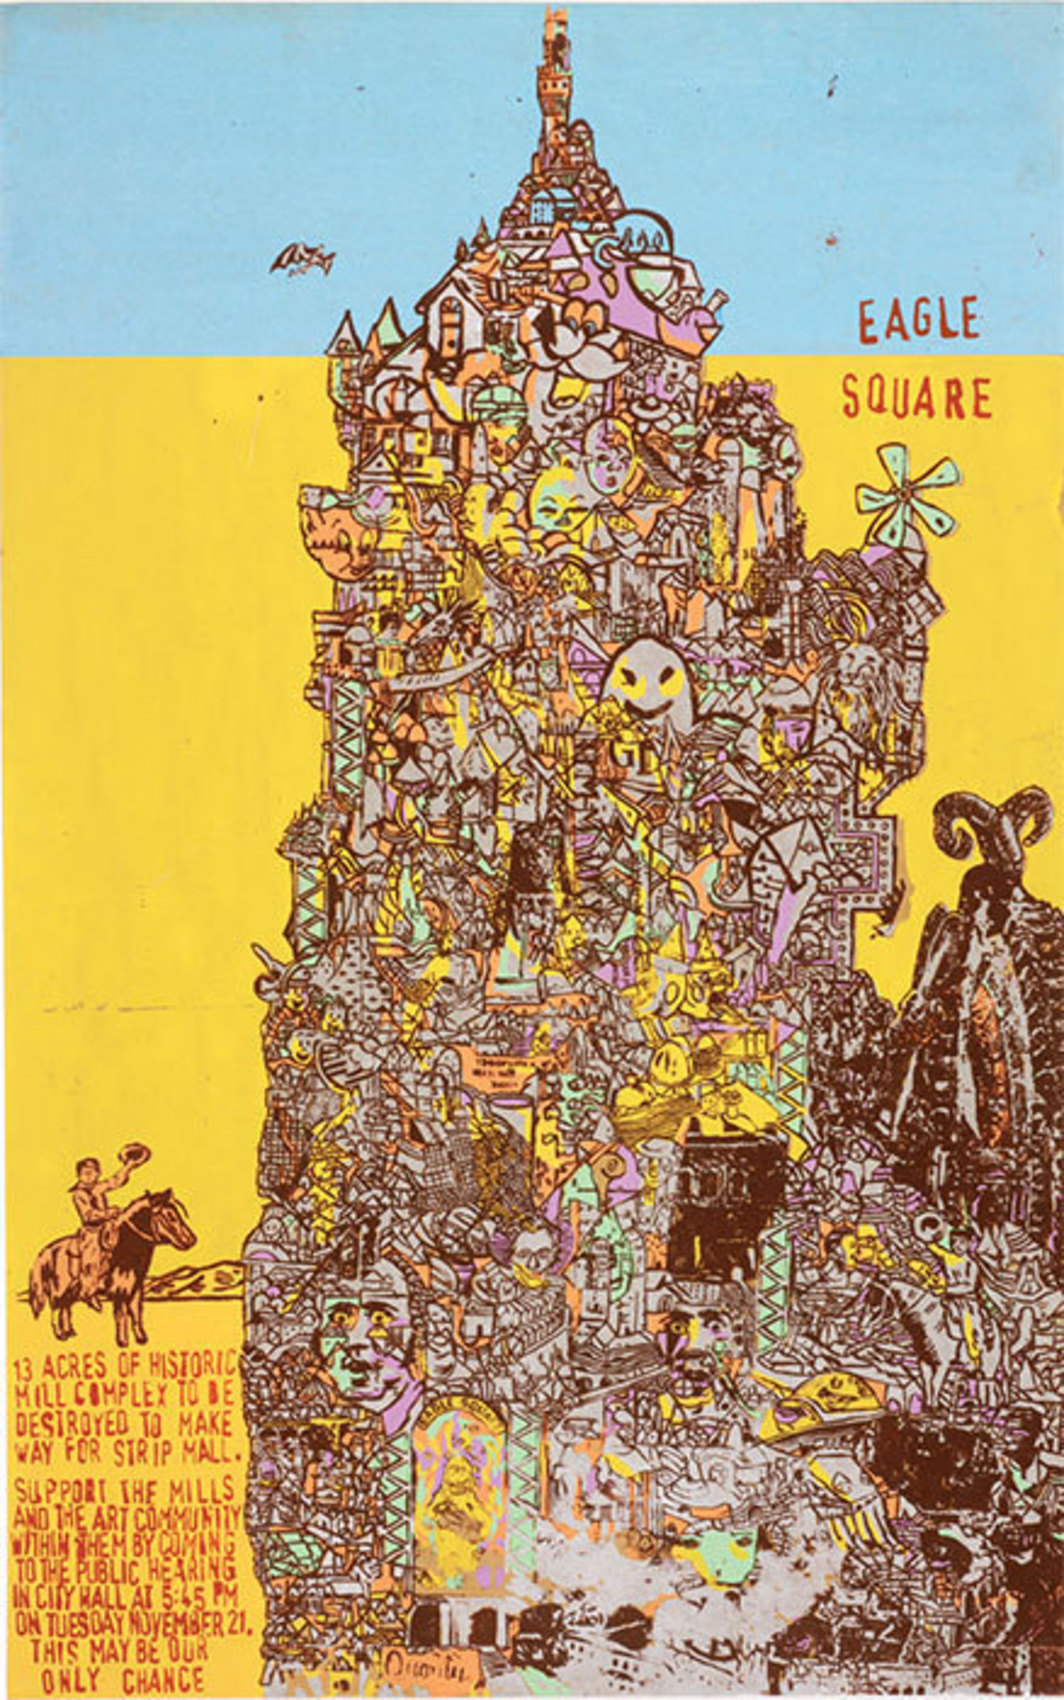 "Brian Chippendale, Save Eagle Square, 2001, silk screen on paper, 40 x 25"". From ""Wunderground."""